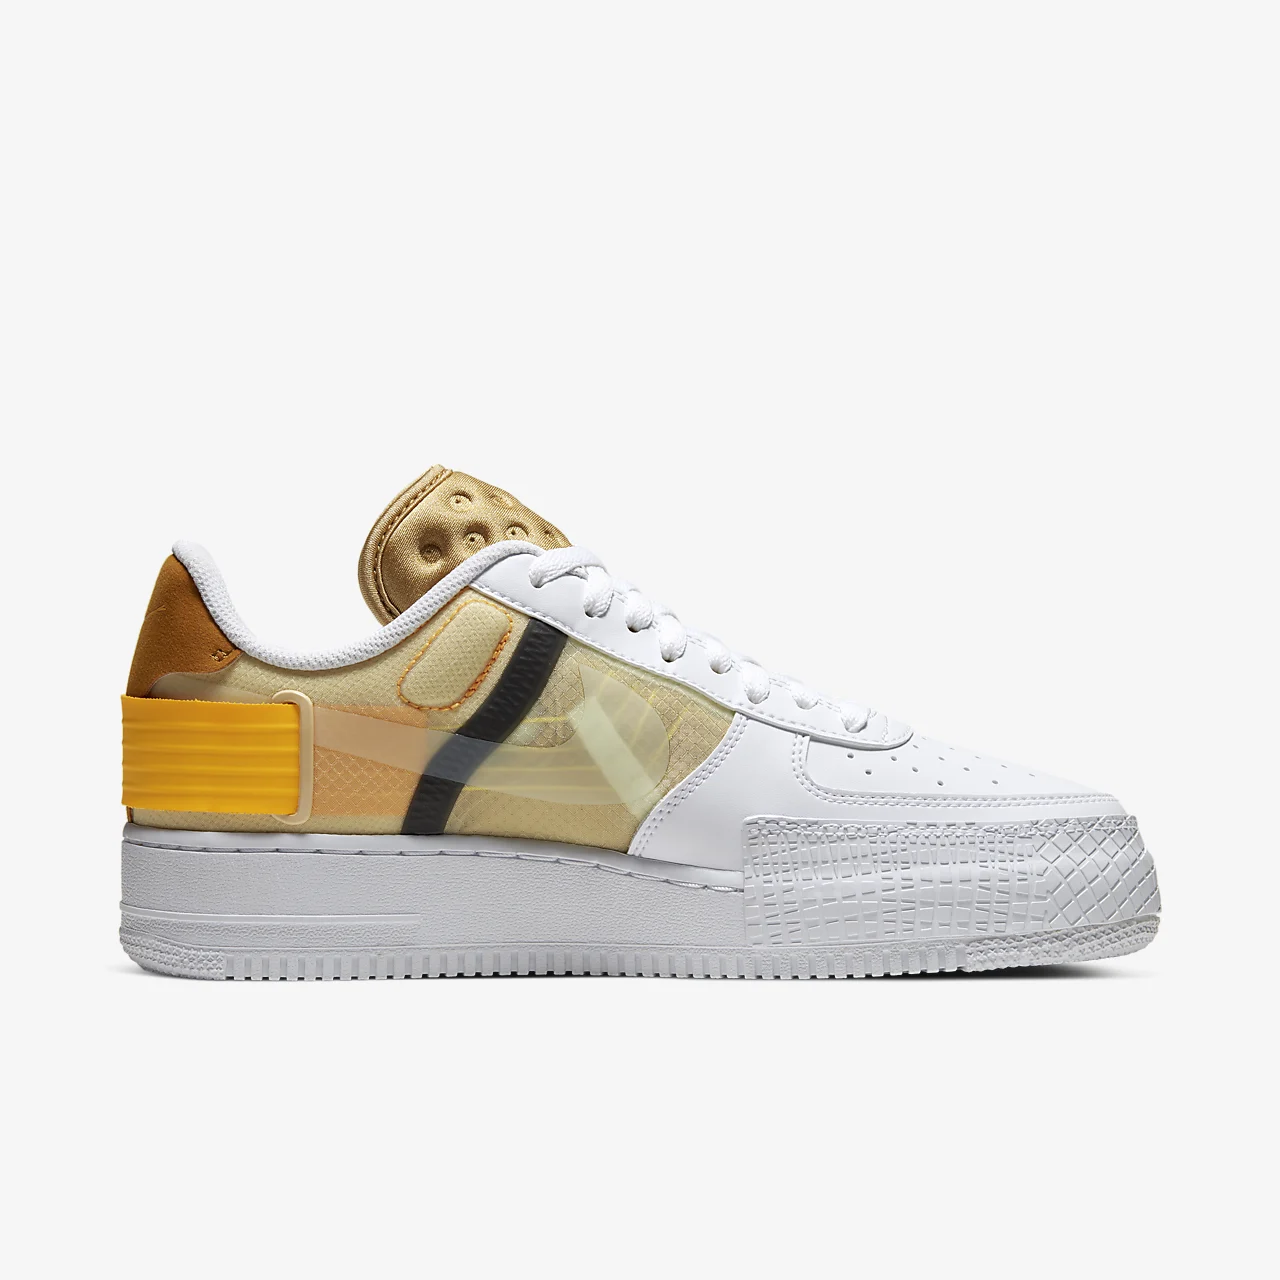 유럽직배송 나이키 NIKE Nike Air Force 1 Type Men's Shoe AT7859-100